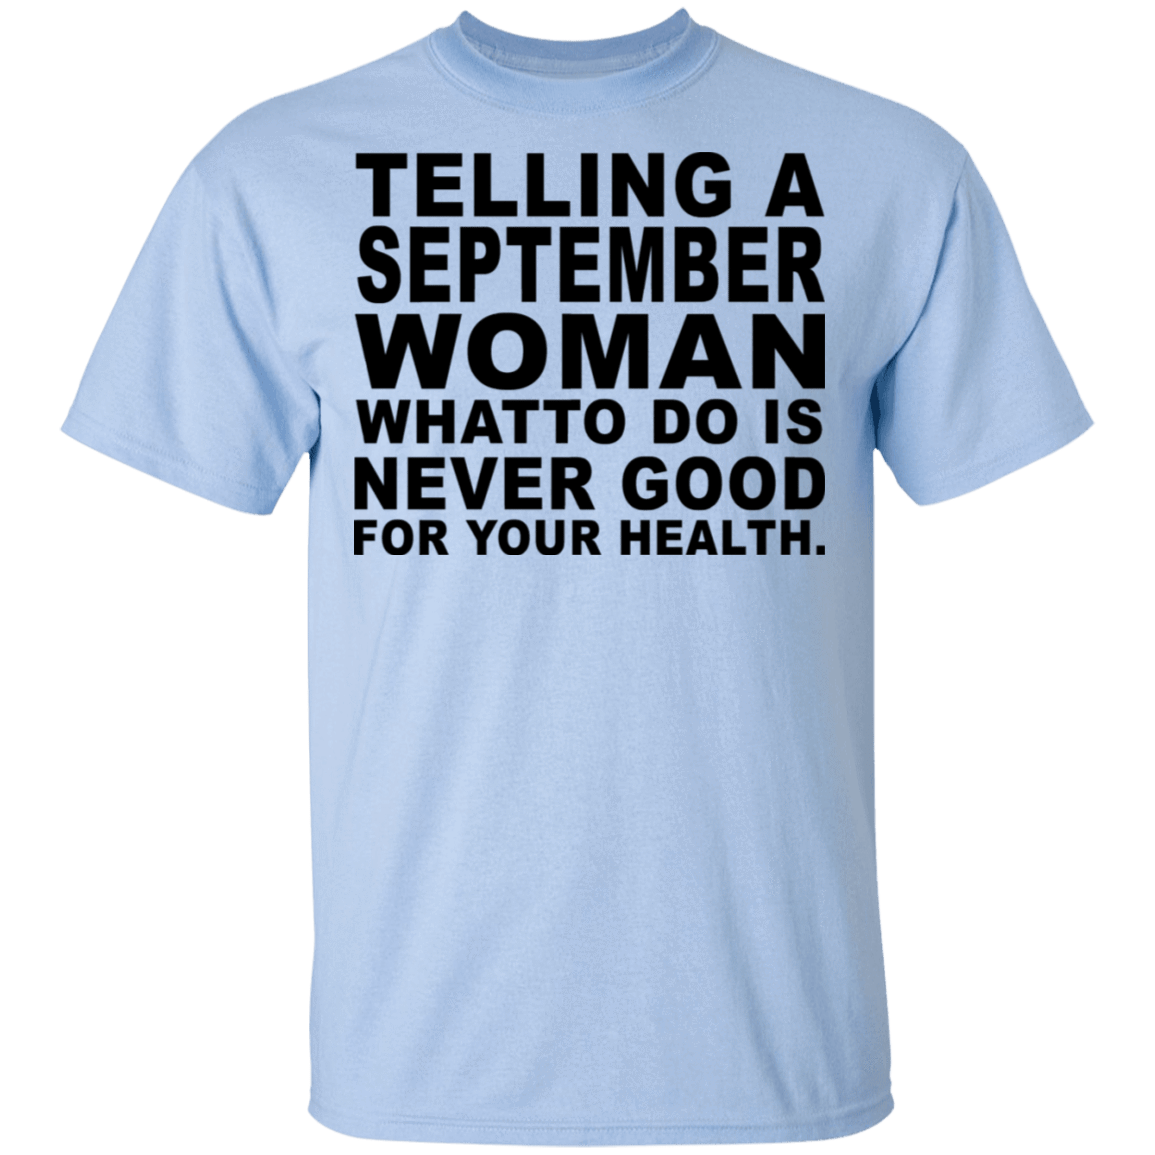 Telling A September Woman What To Do Is Never Good T-Shirts, Hoodies, Tank 22-9800-79463215-47430 - Tee Ript